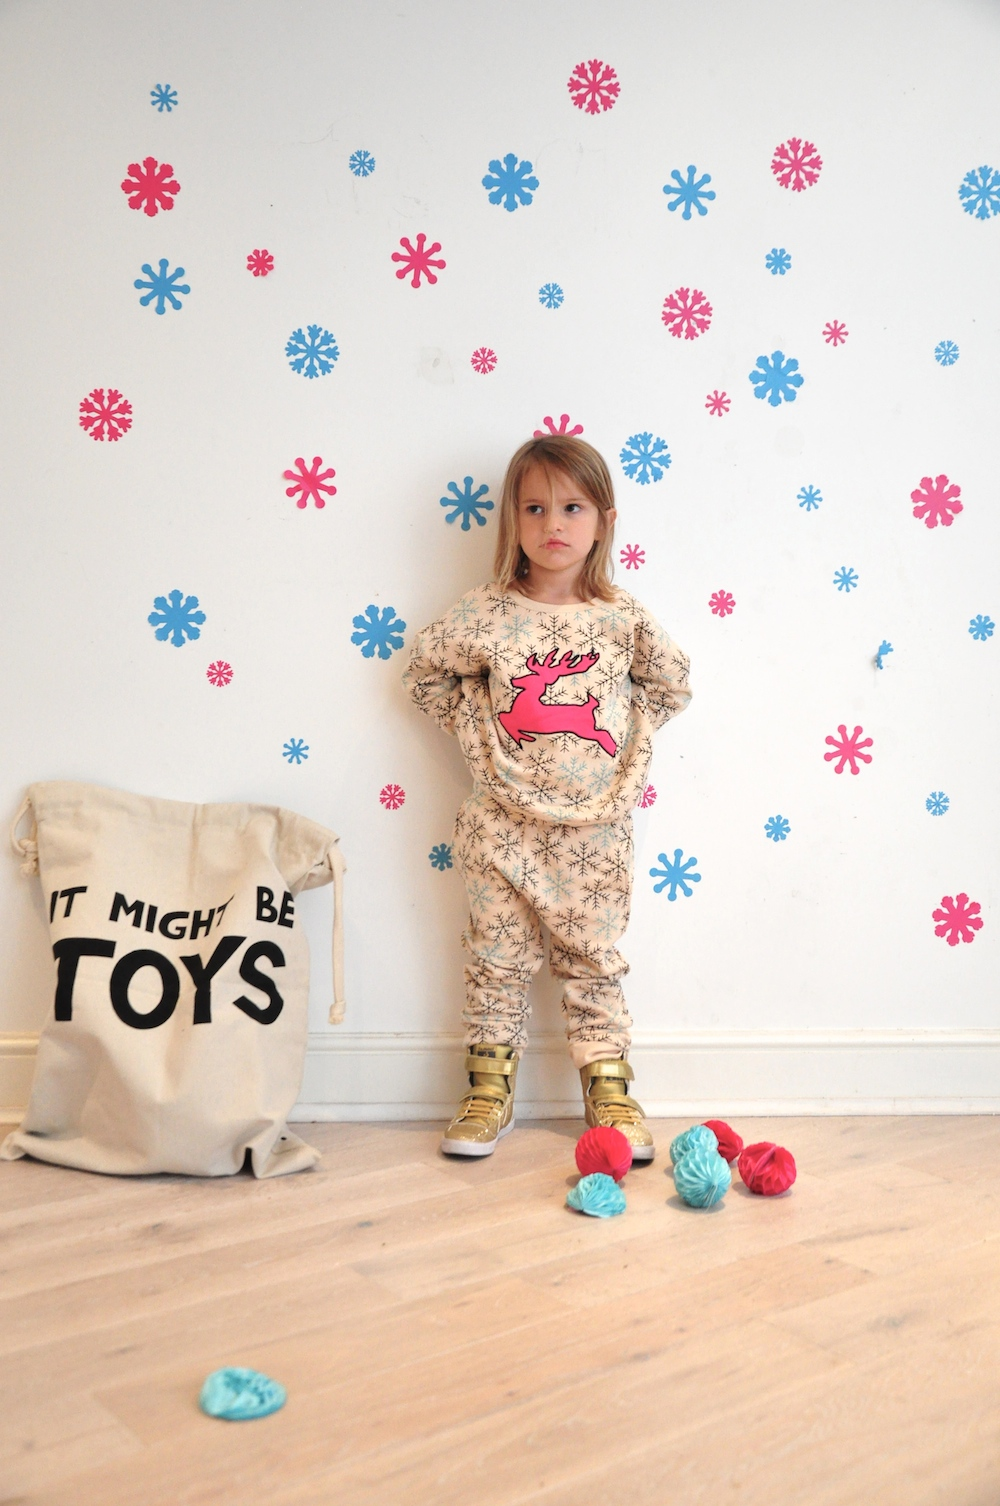 Gardner_and_the_gang_harrods_miniharrods_Christmas_tellkiddo_kidsen_35